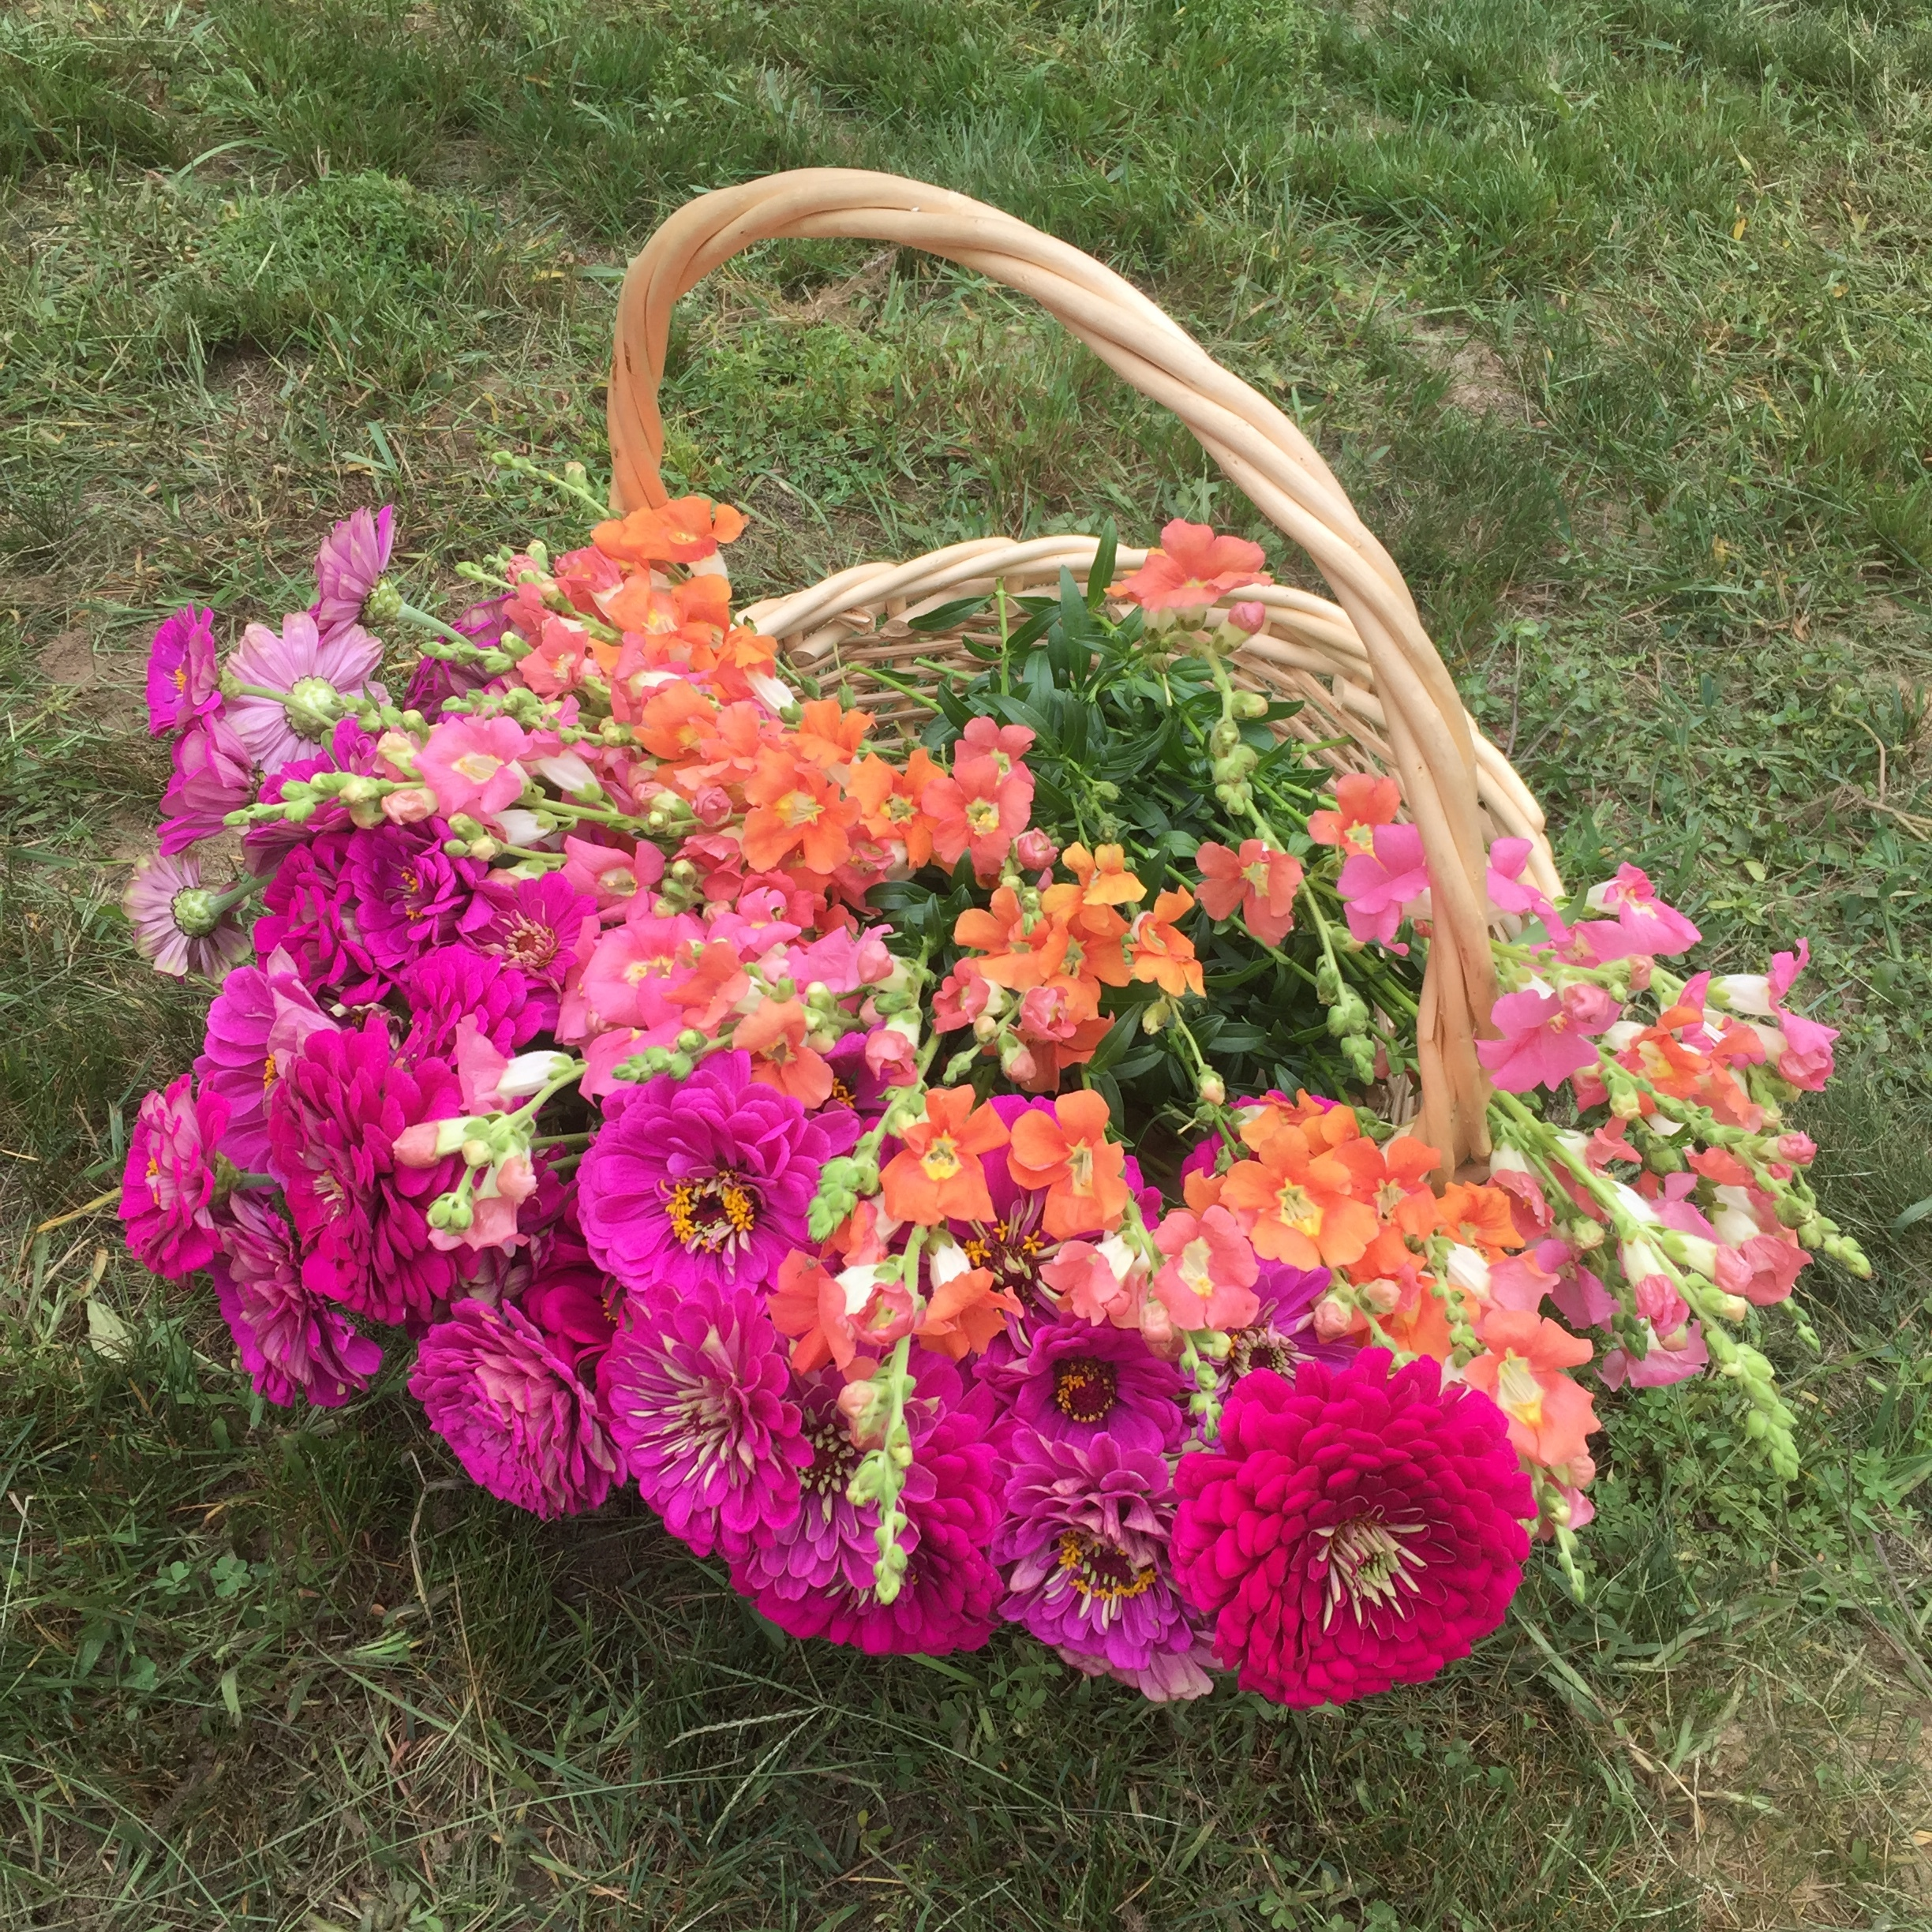 Our Chantilly pink and bronze snapdragons harvested with Benary's Giant purple zinnias.